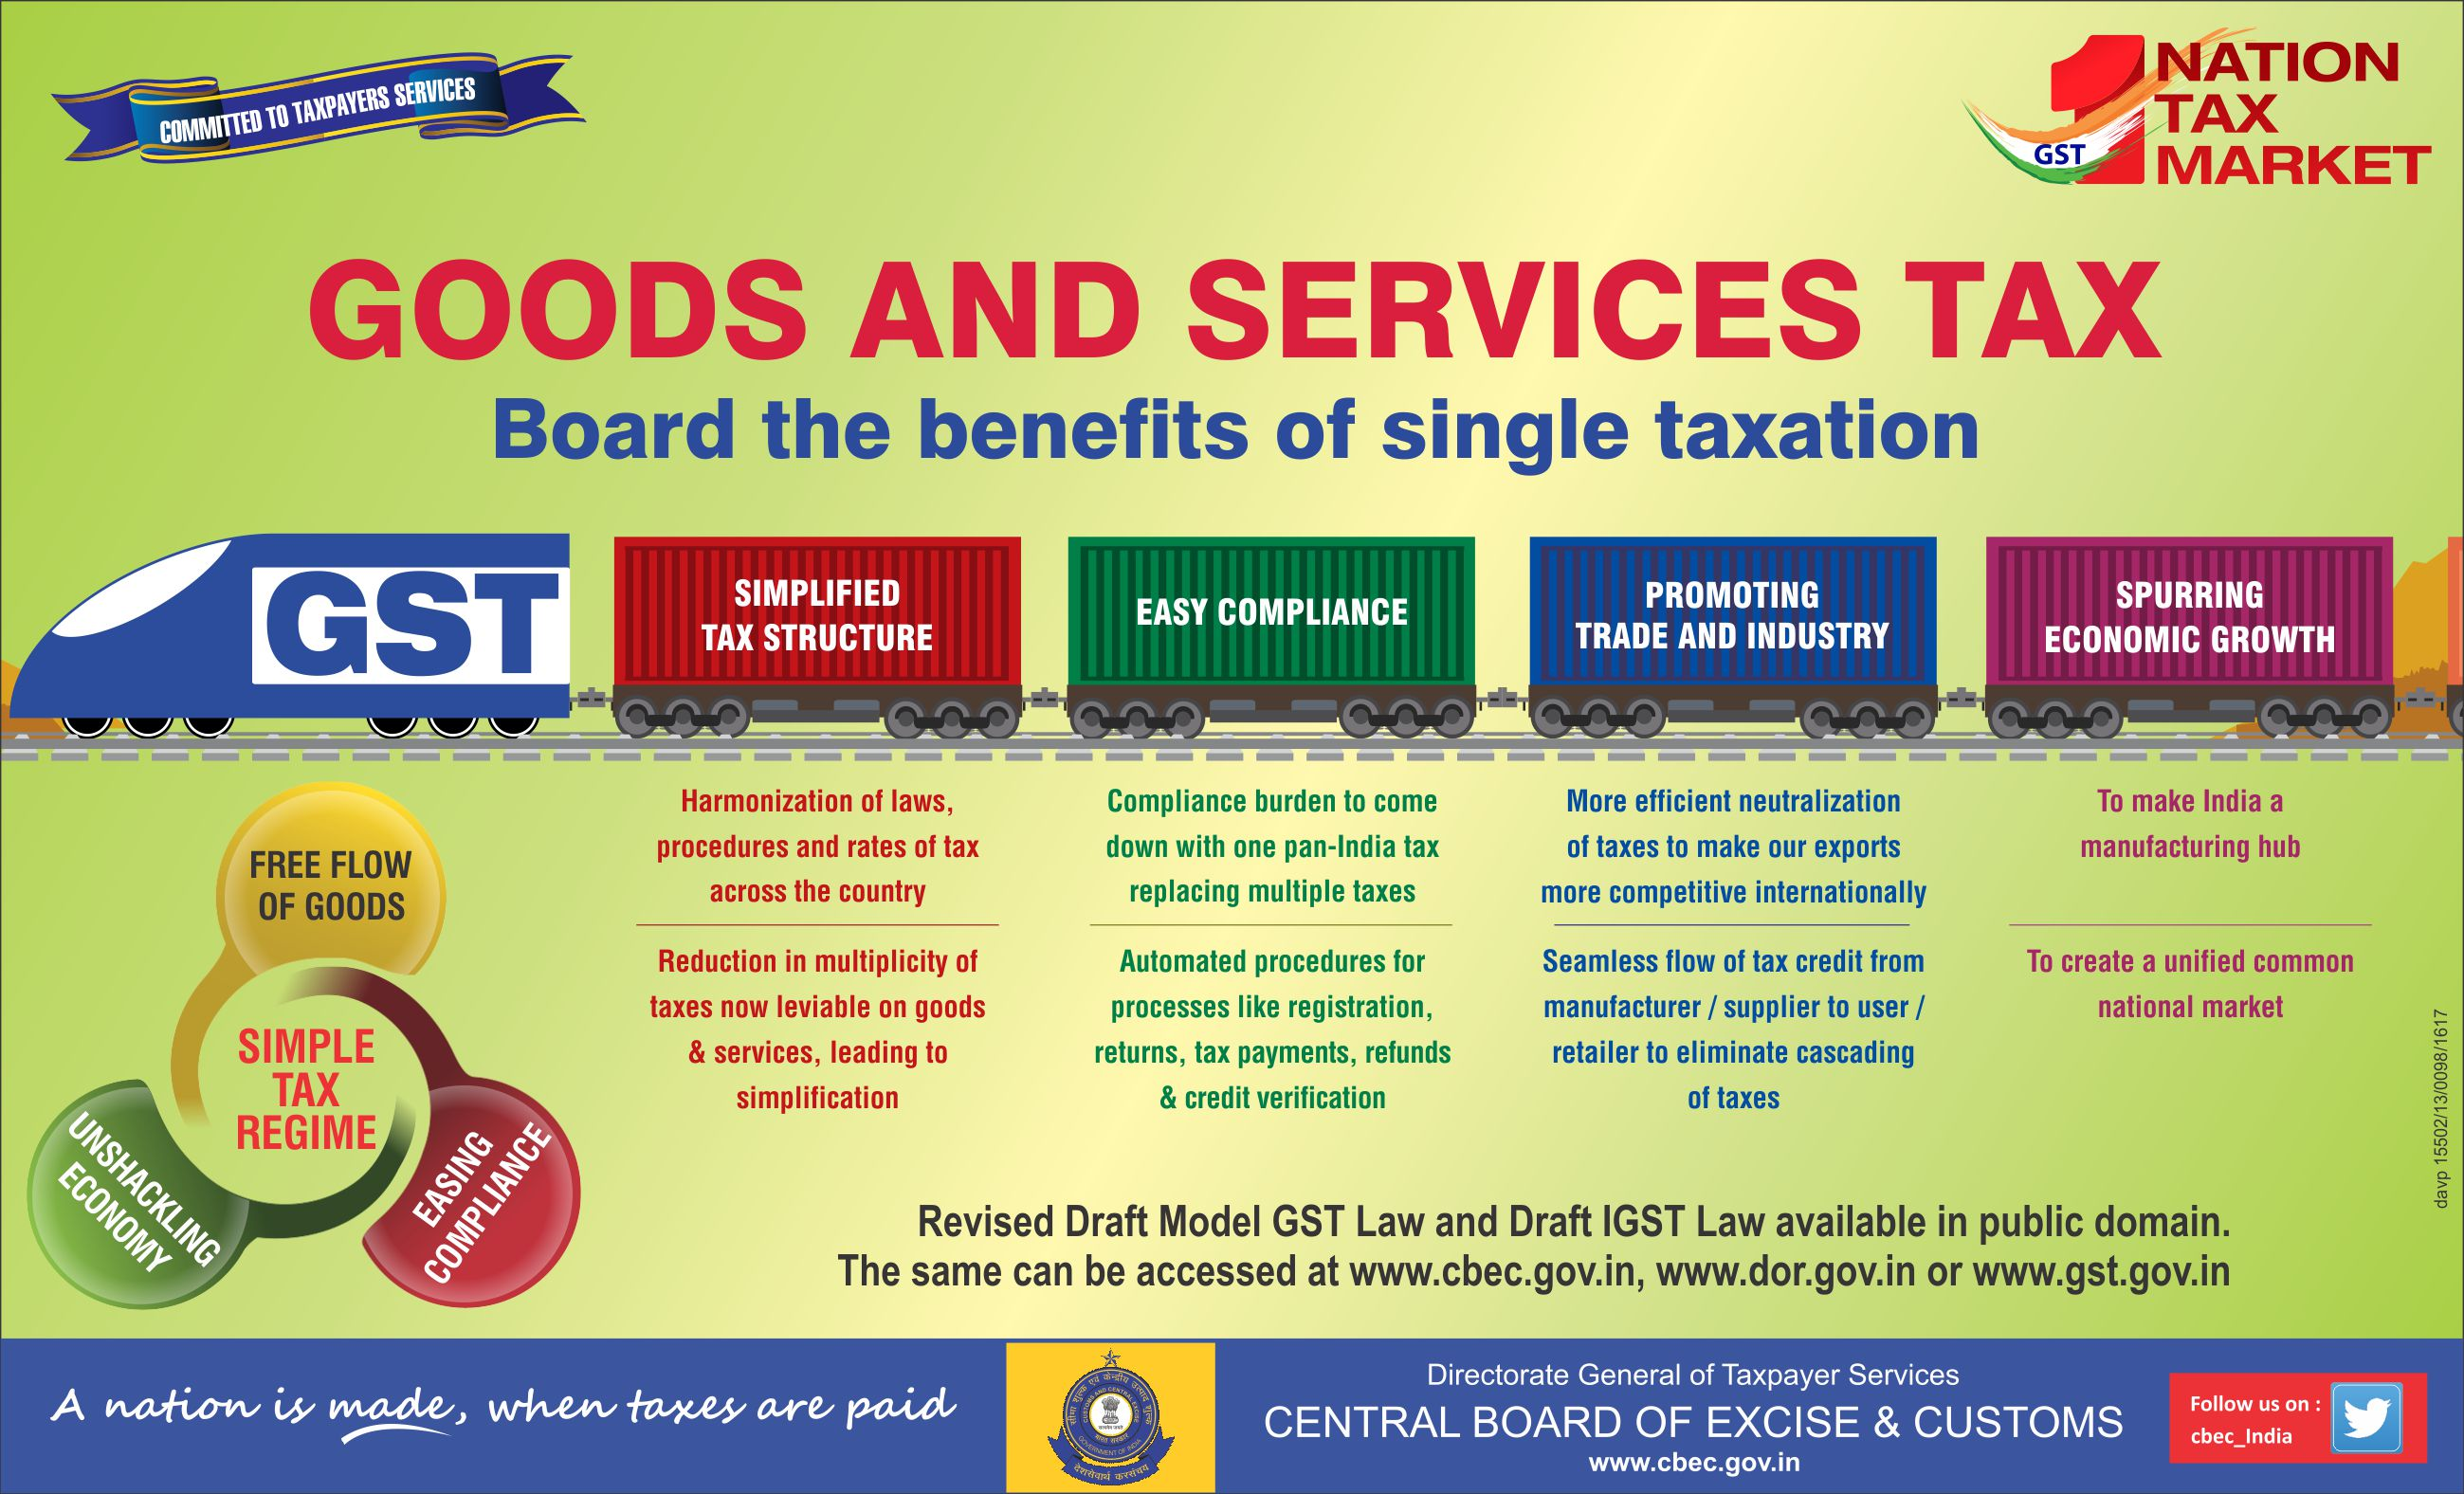 Home Page of Central Board of Excise and Customs